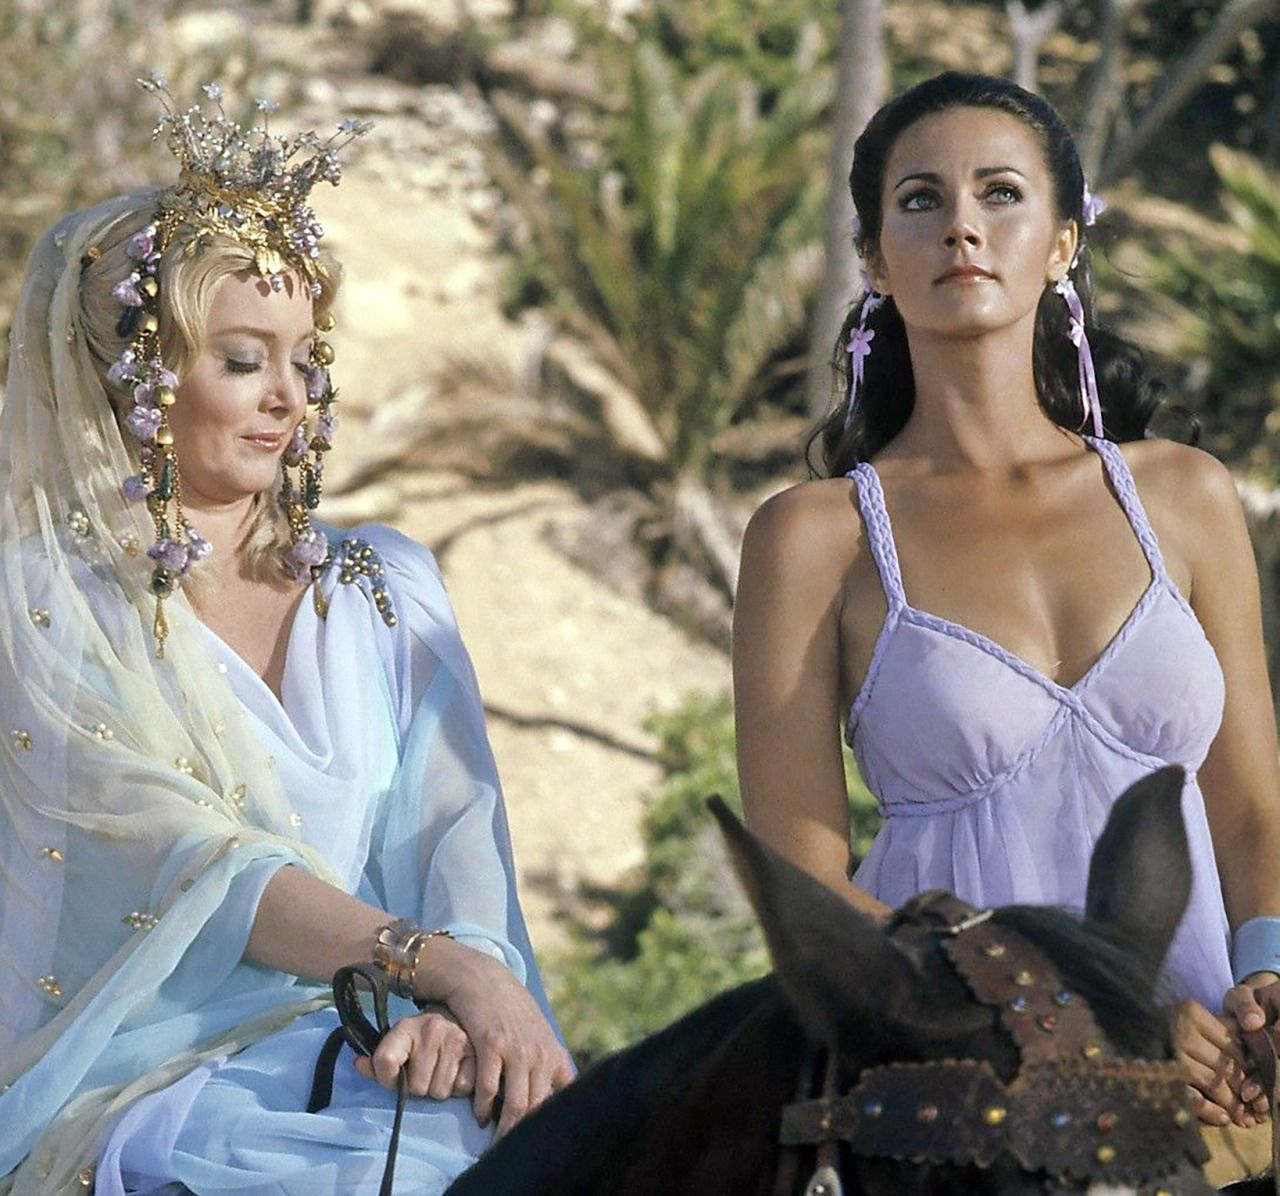 Lynda Carter with Carolyn Jones - Wonder Woman, 1970s | Favorite TV